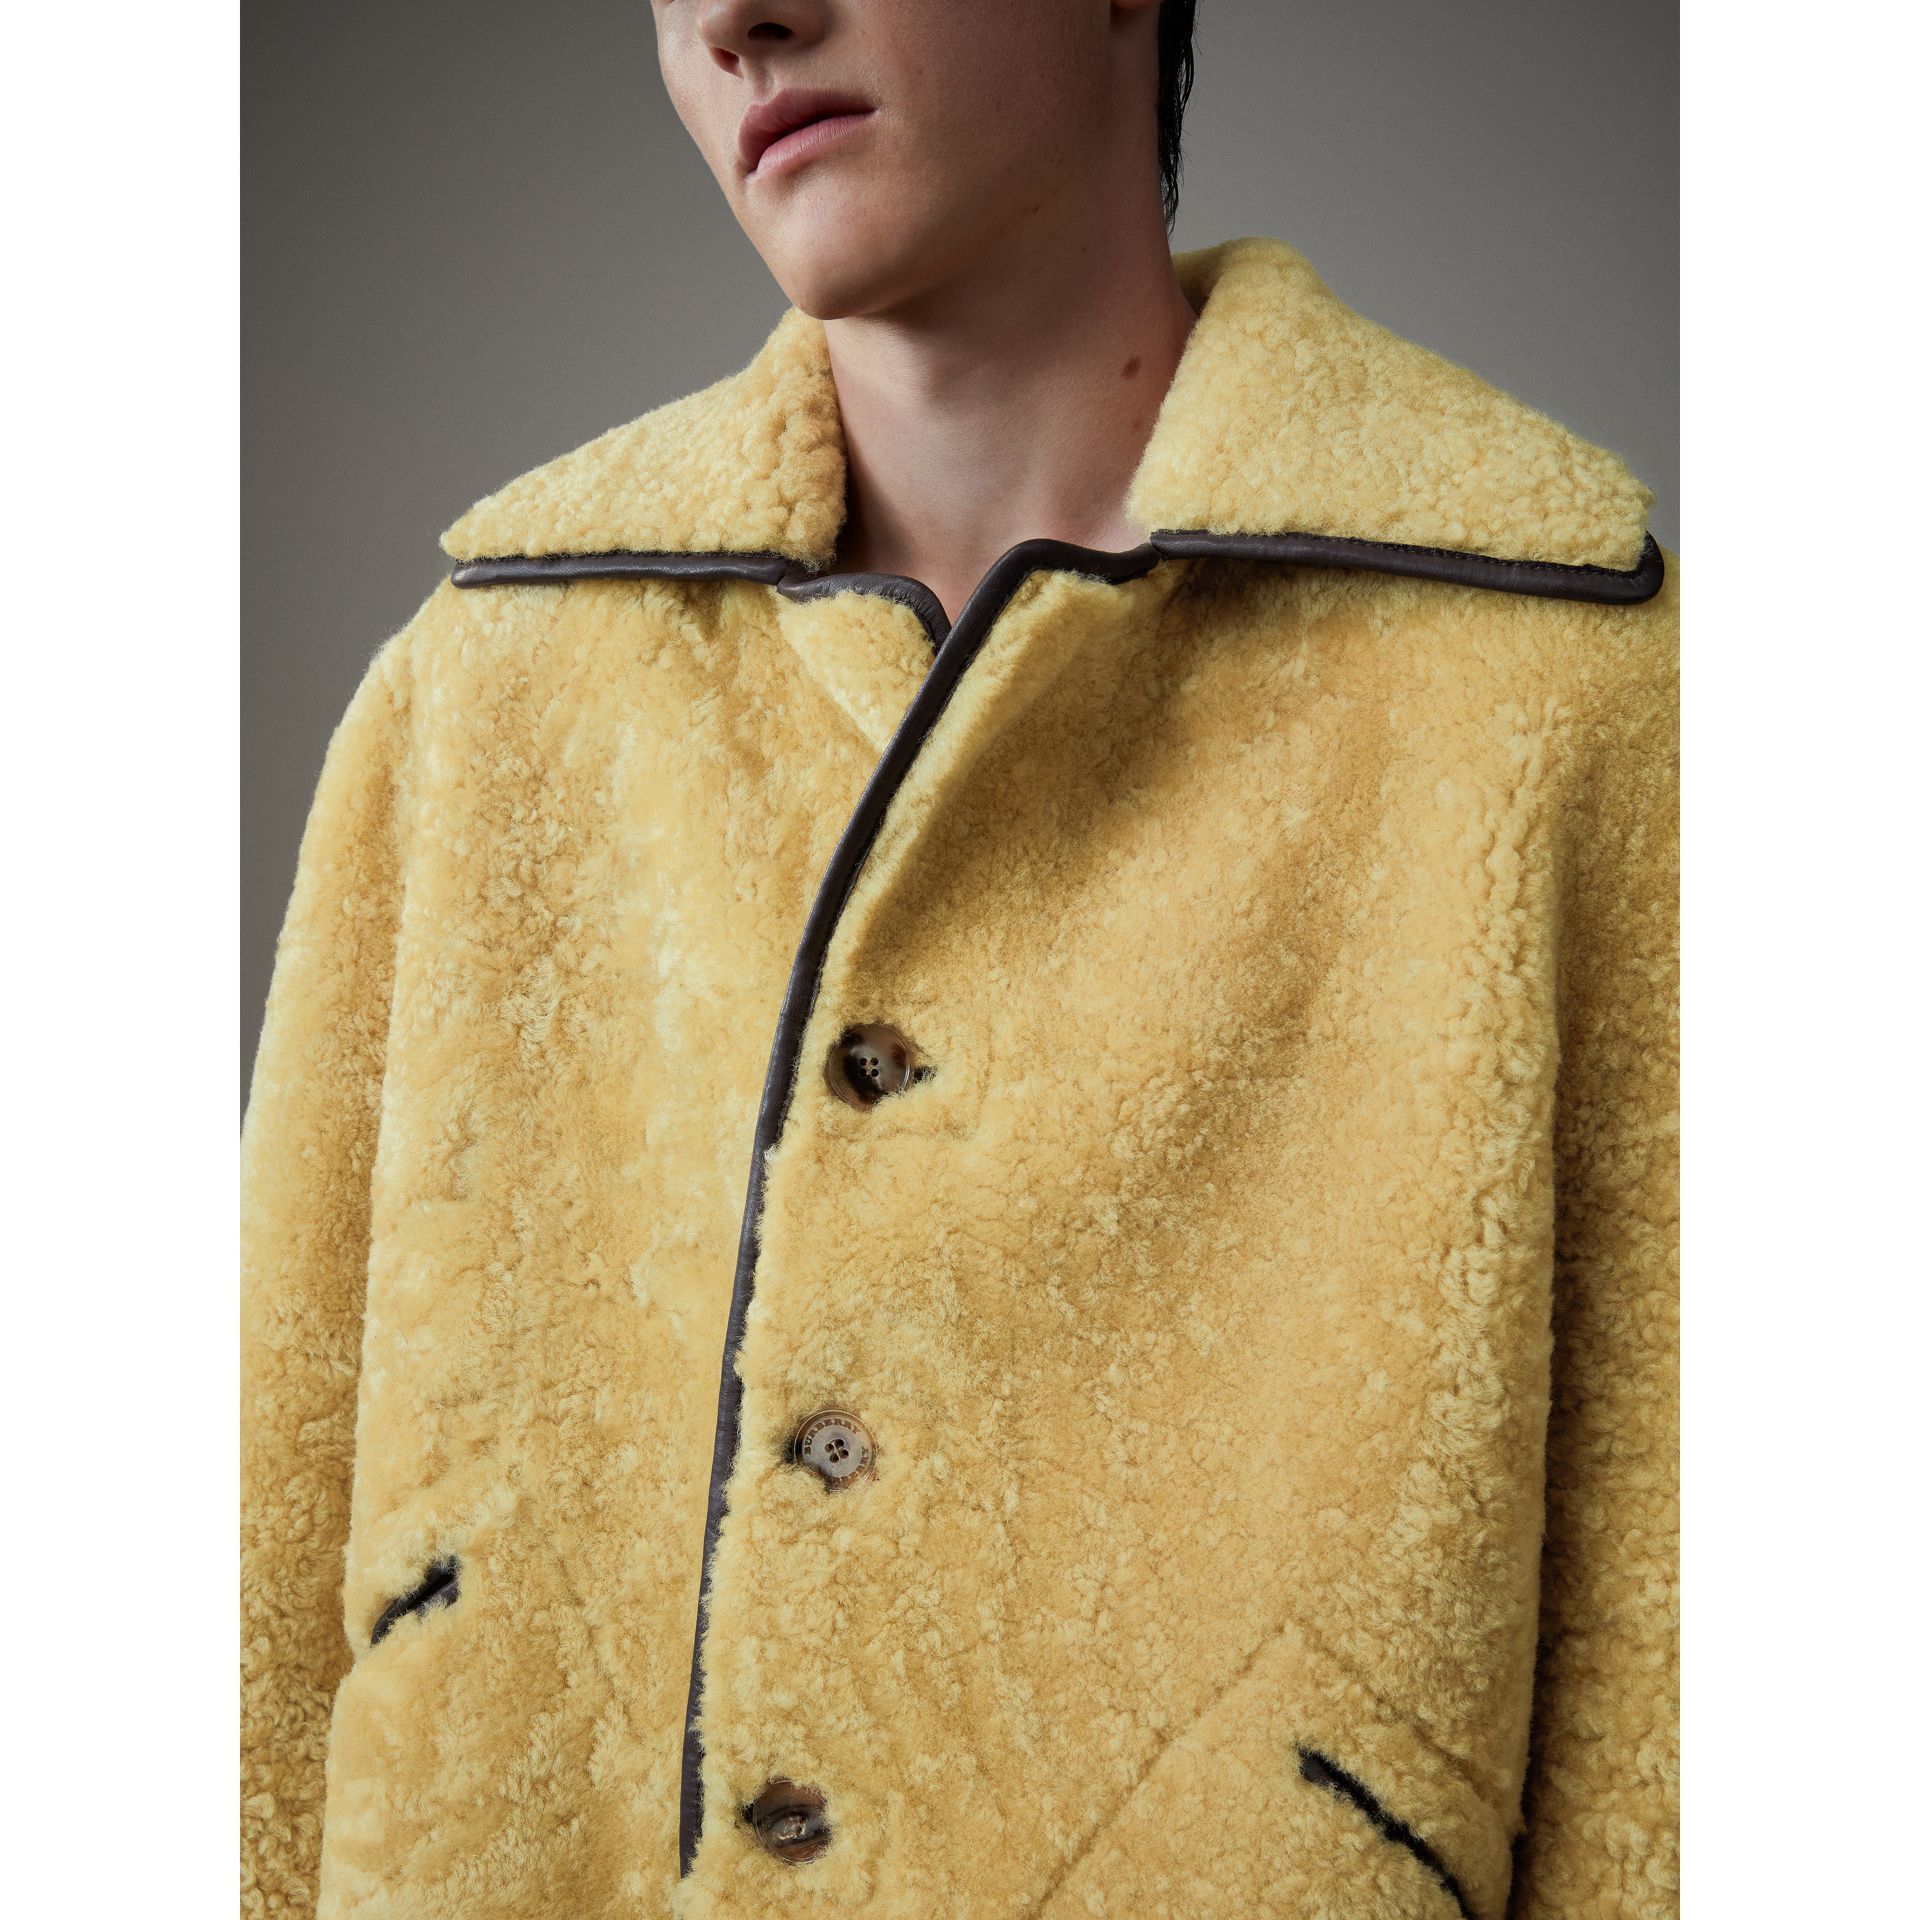 Relaxed Fit Shearling and Lambskin Jacket in Chocolate/light Citrus - Men | Burberry Australia - gallery image 2